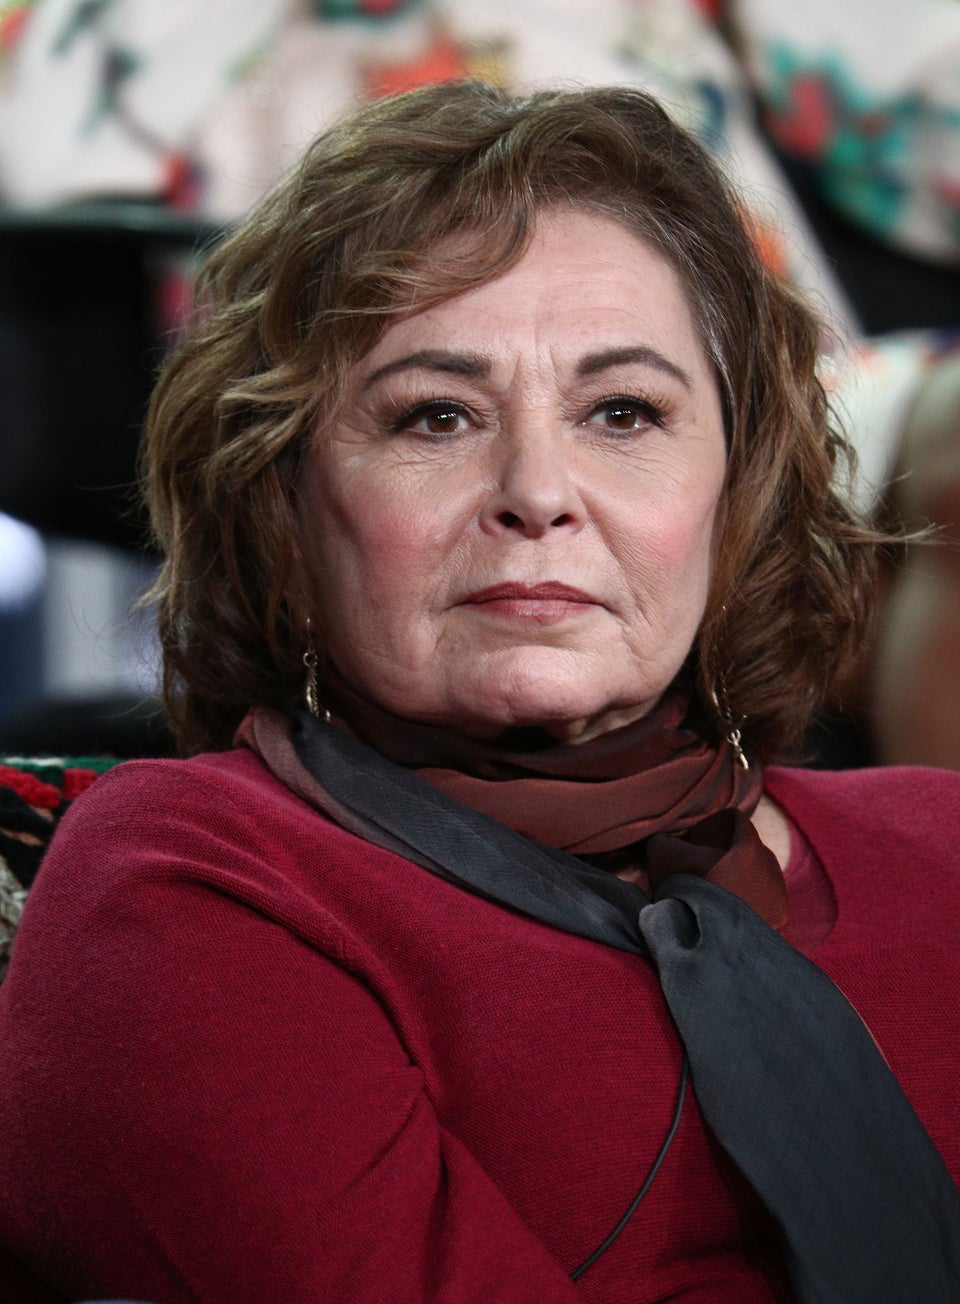 Roseanne Barr Blames Michelle Obama For Getting Fired From ABC Reboot